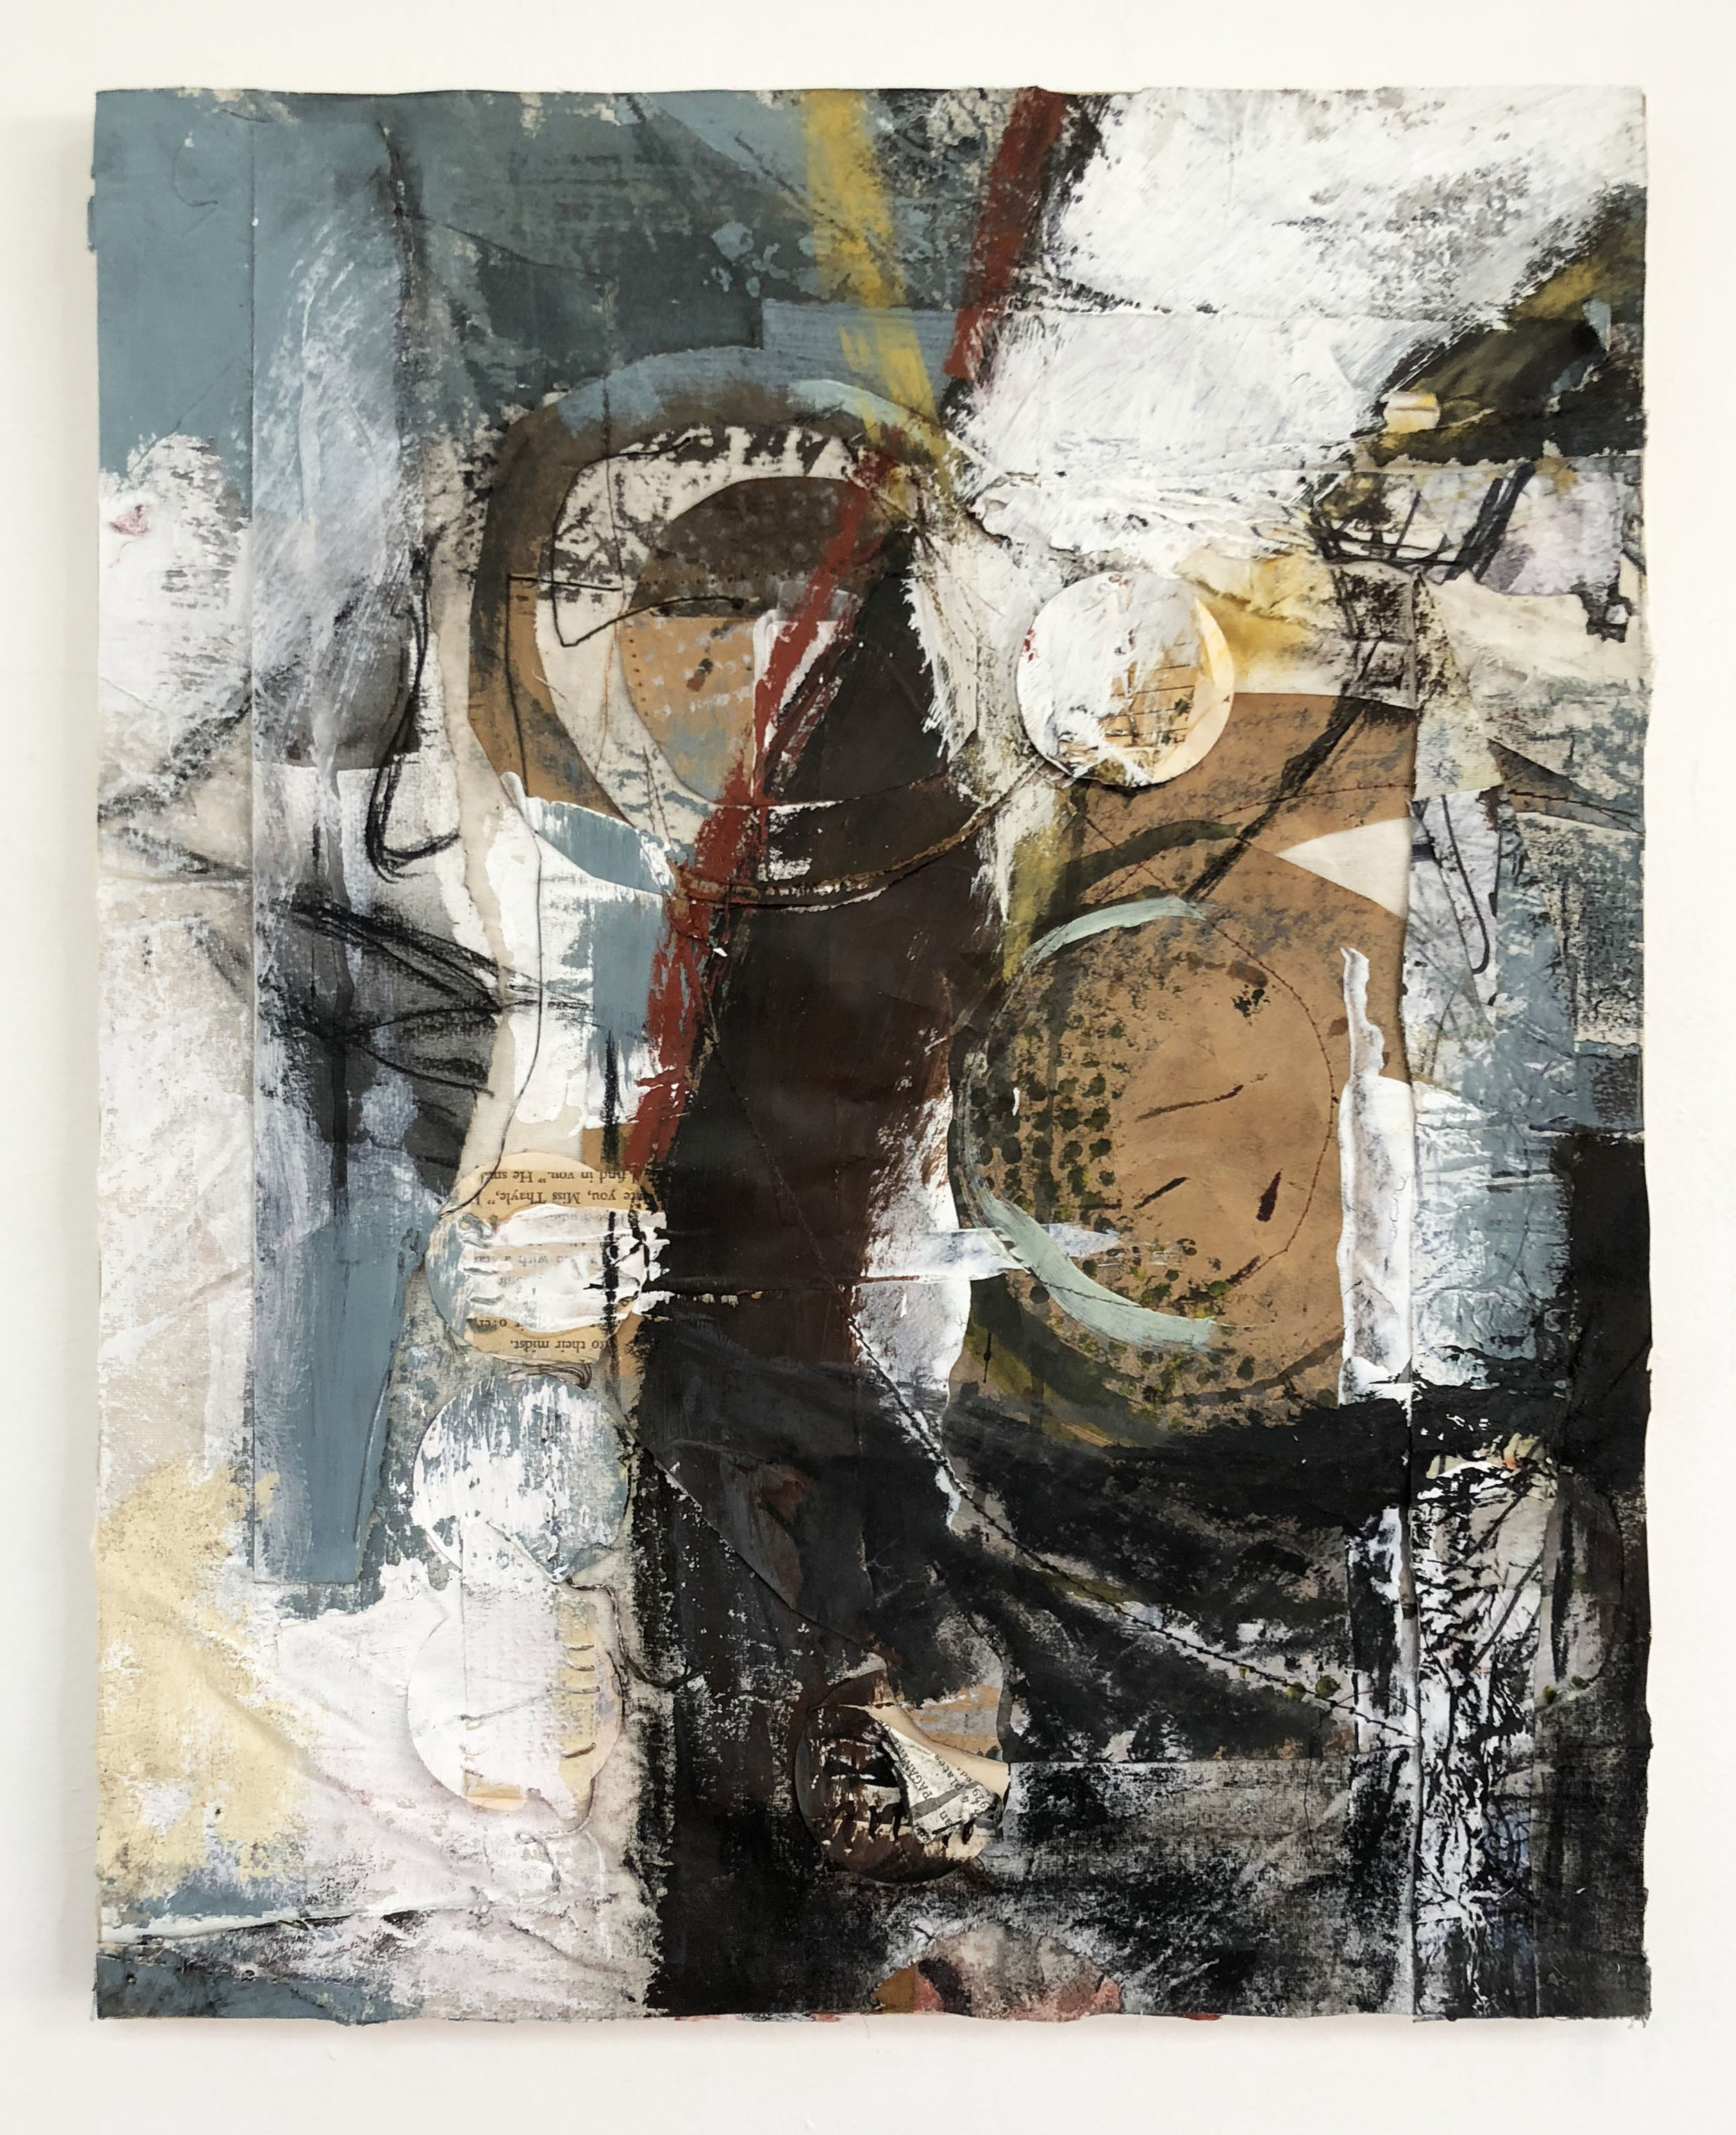 Sewn, Spiral & Swirl,  2016-18, Collage, charcoal, acrylic, oil, ink, thread, conté, on panel